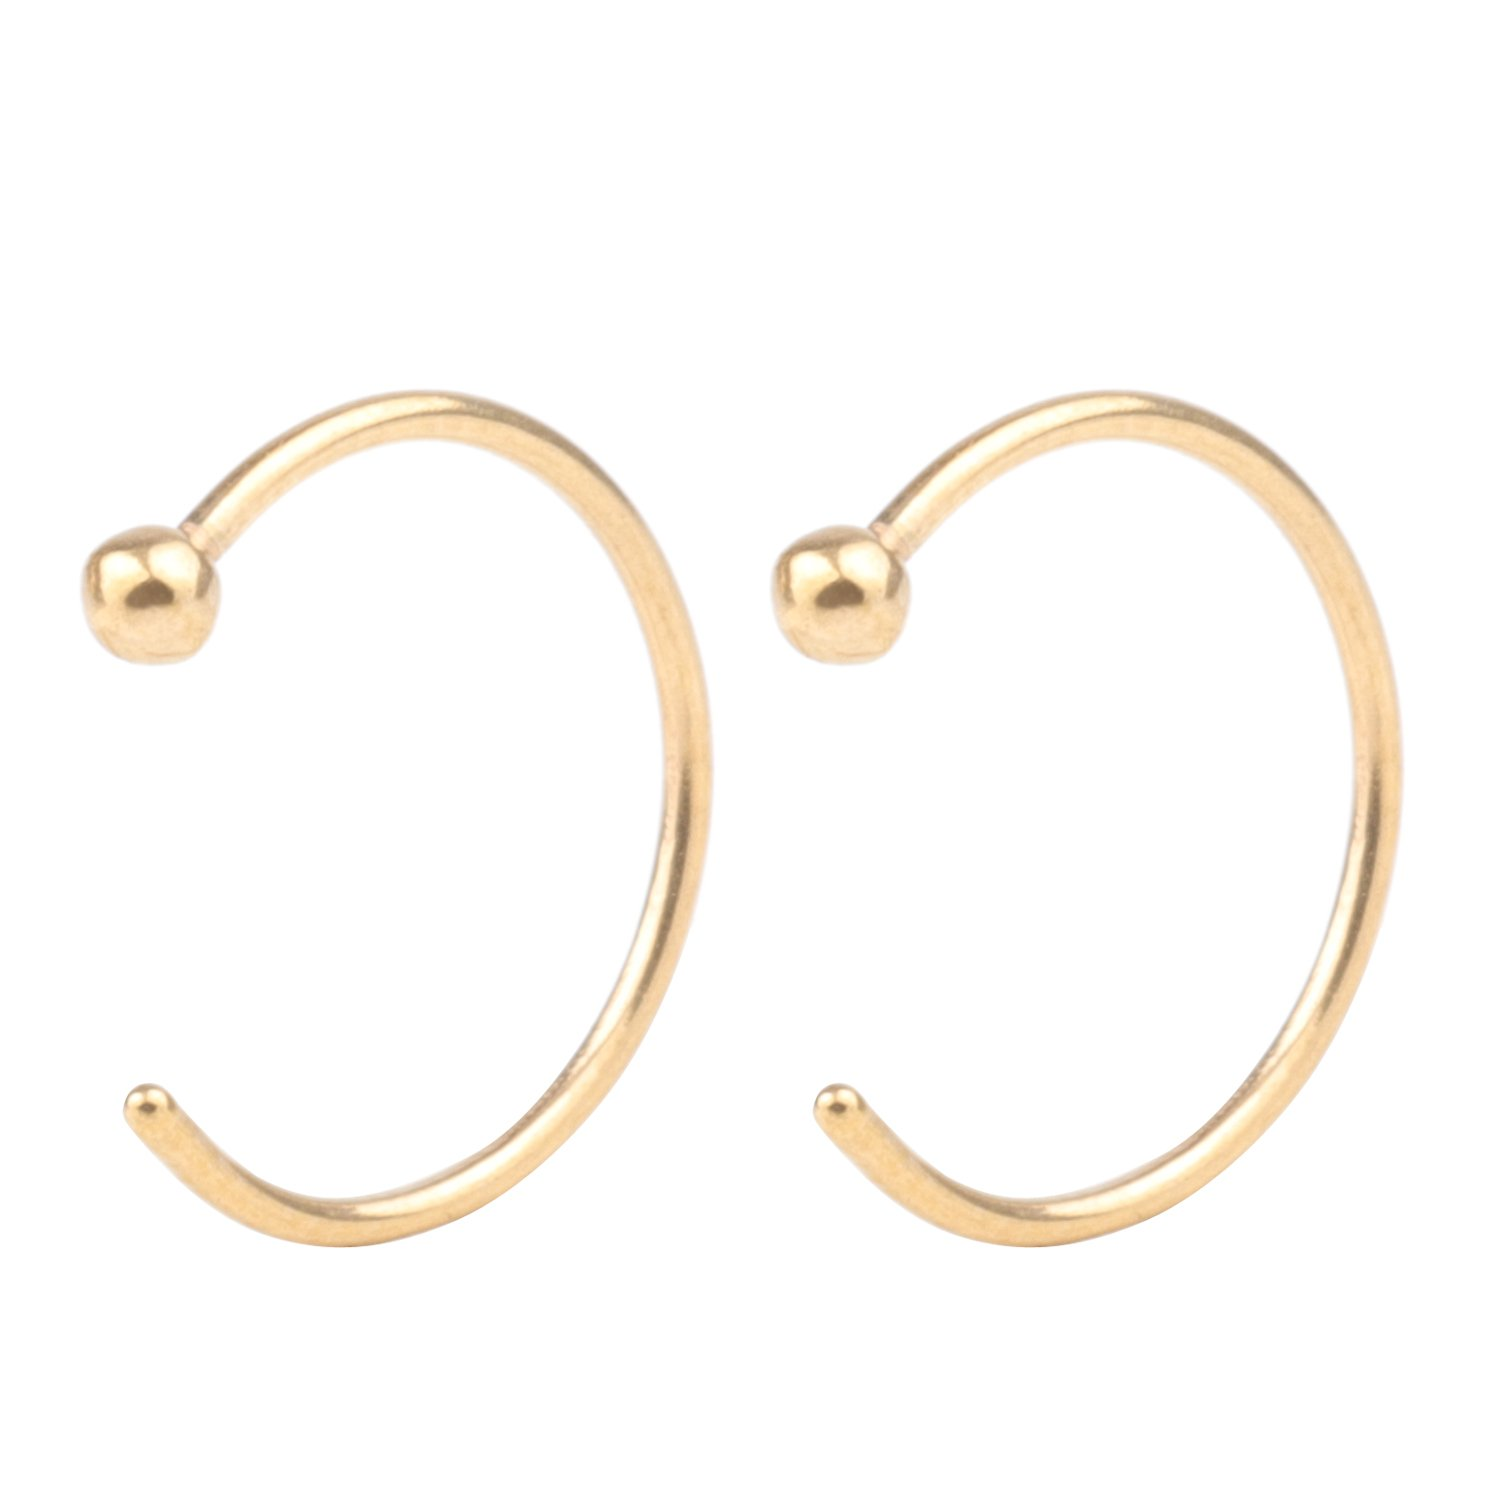 CM's 2 Pcs Gold 20G 10mm Stainless Steel Hoop Nose Ring Studs Body Jewelry Piercing